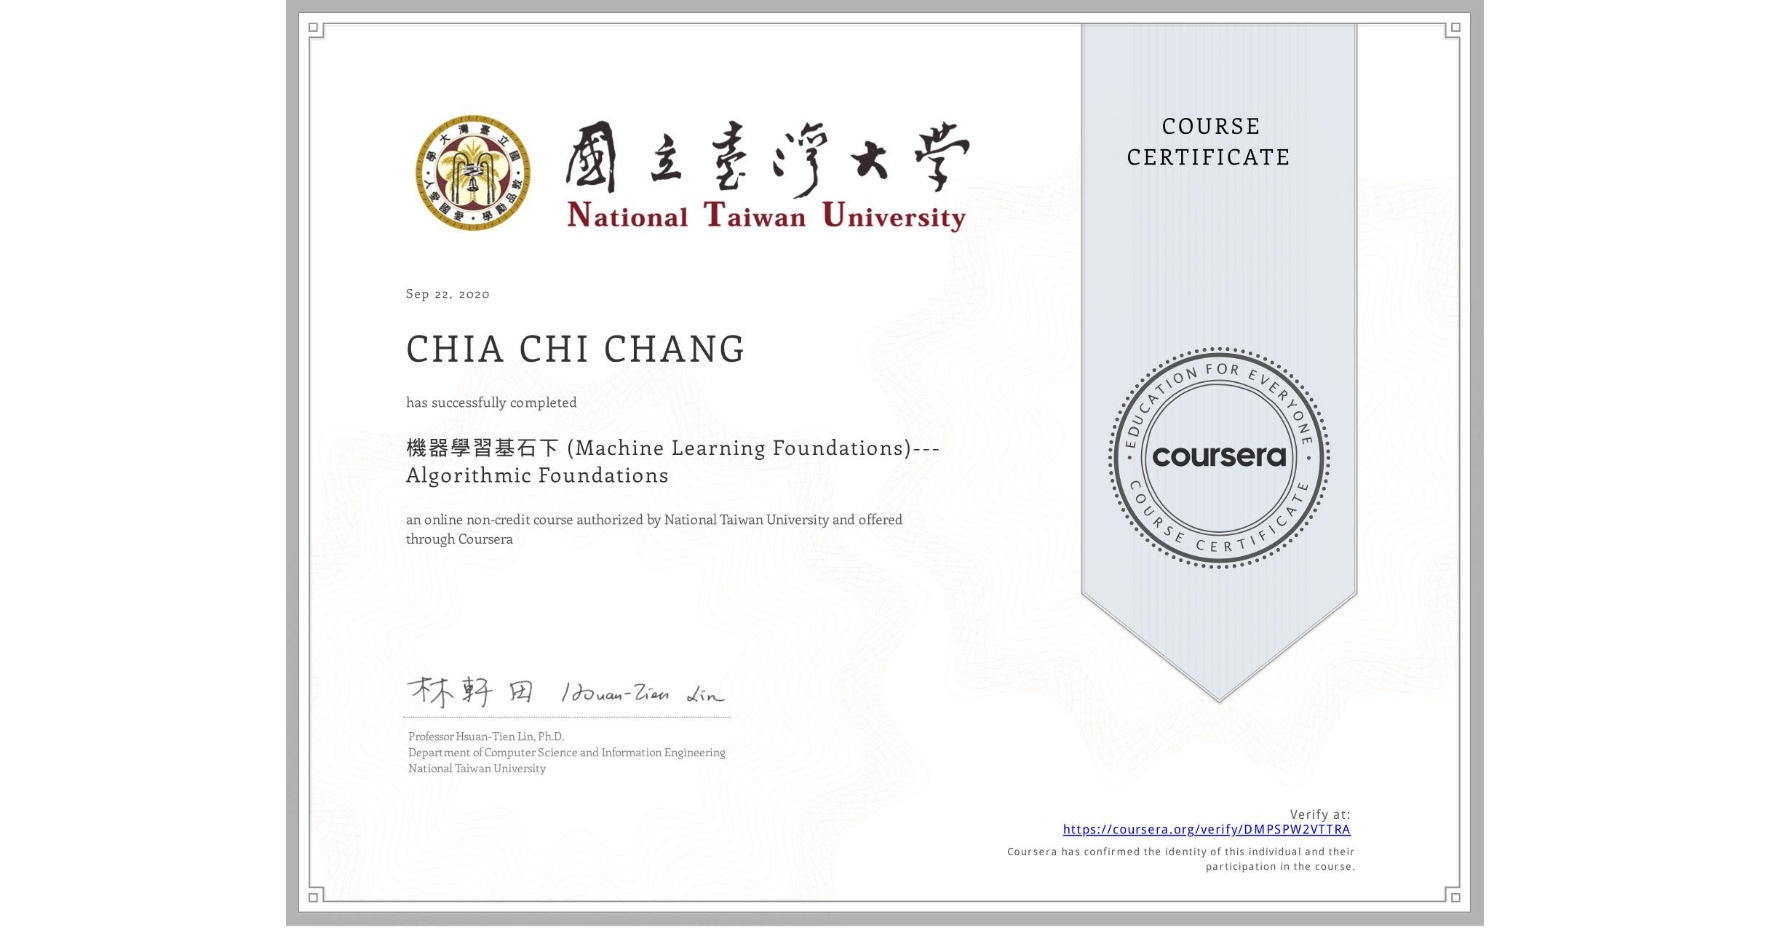 View certificate for CHIA CHI  CHANG, 機器學習基石下 (Machine Learning Foundations)---Algorithmic Foundations, an online non-credit course authorized by National Taiwan University and offered through Coursera